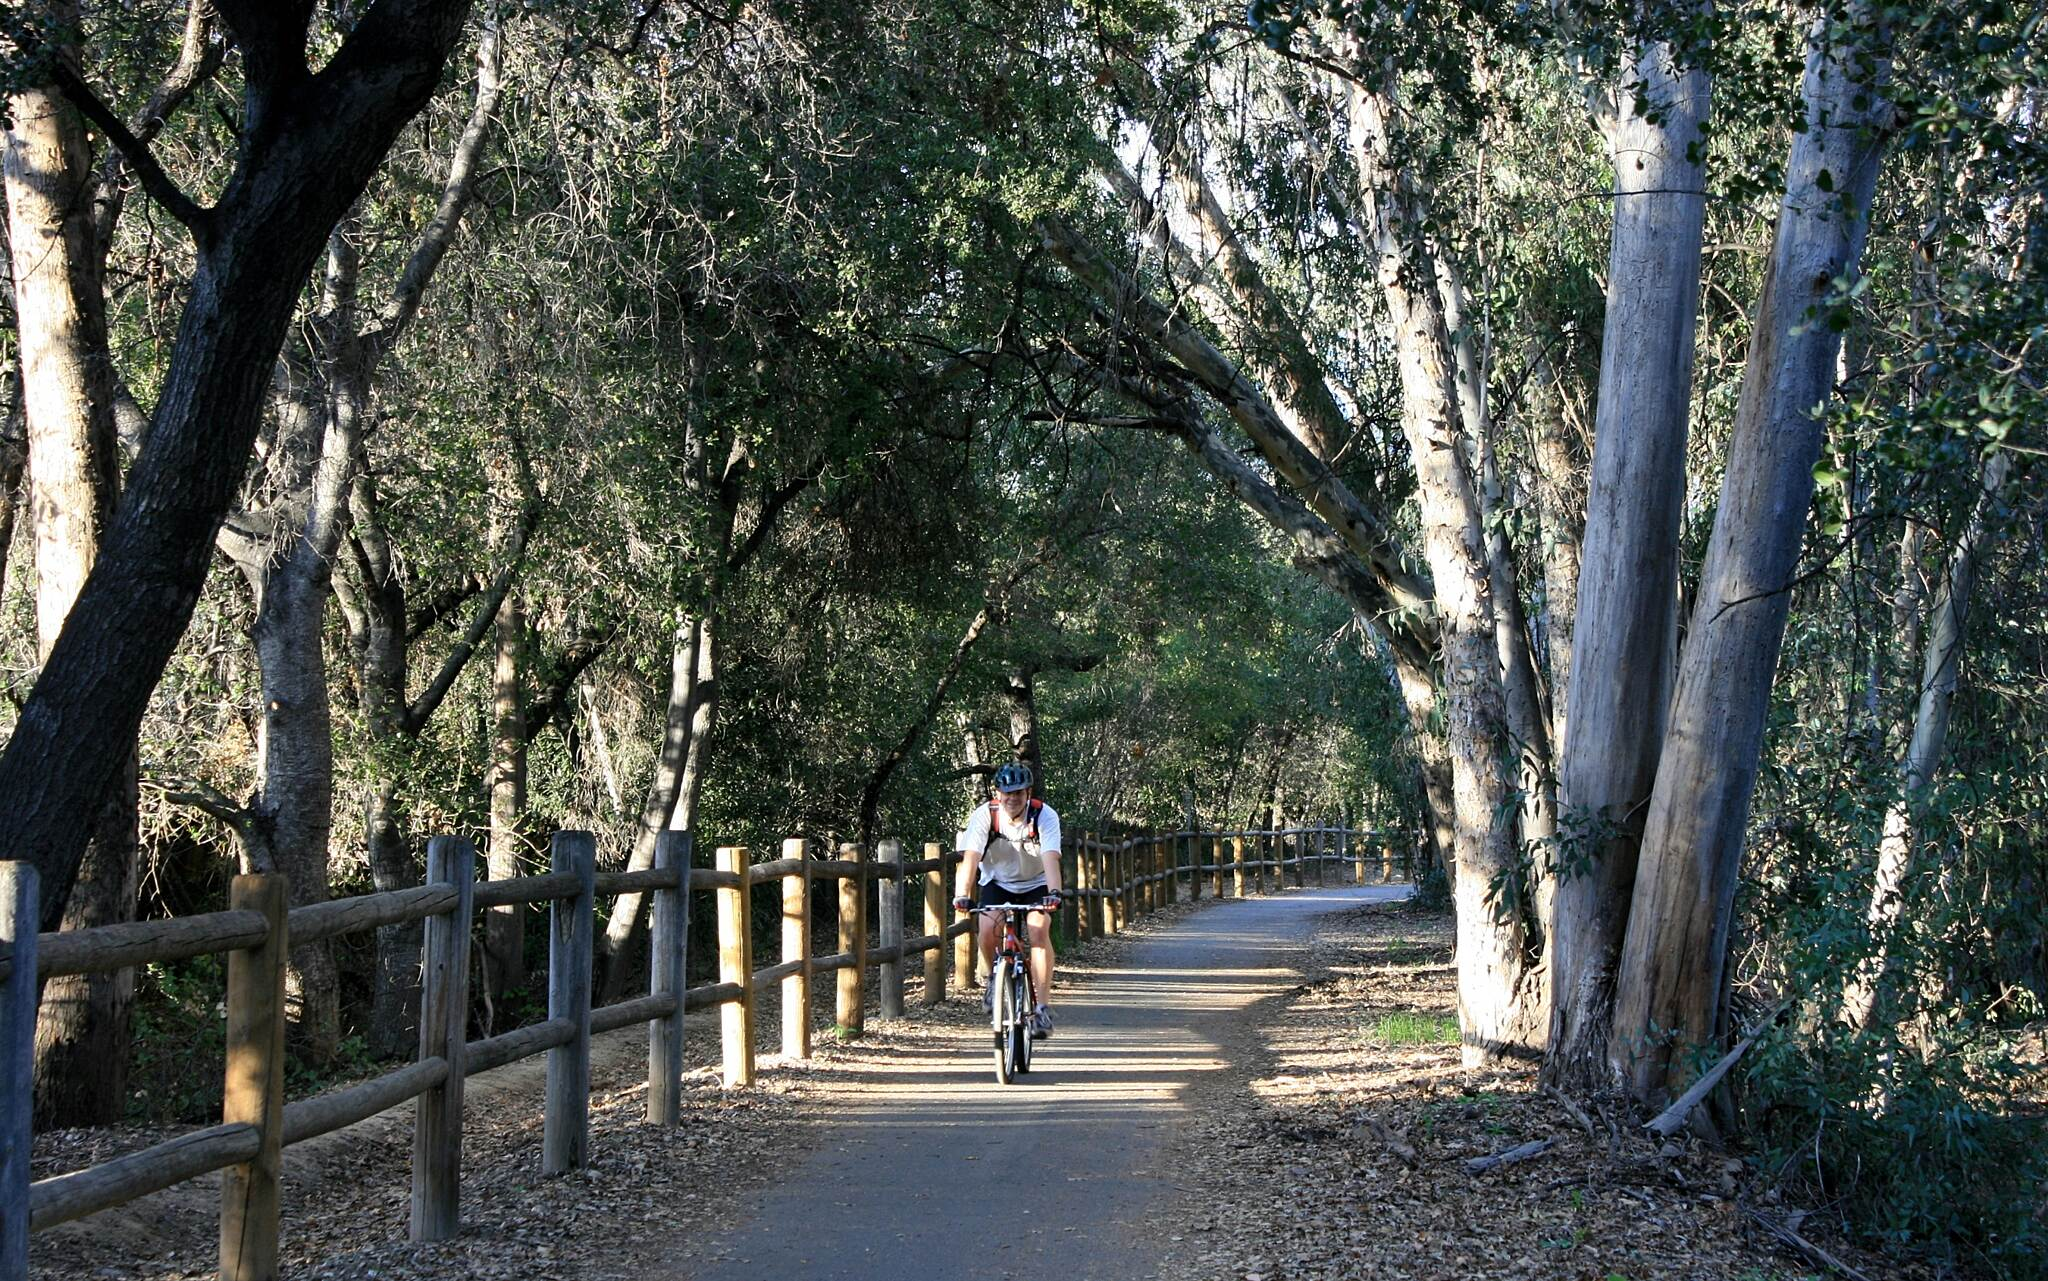 Ojai Valley Trail On the Ojai Valley Trail